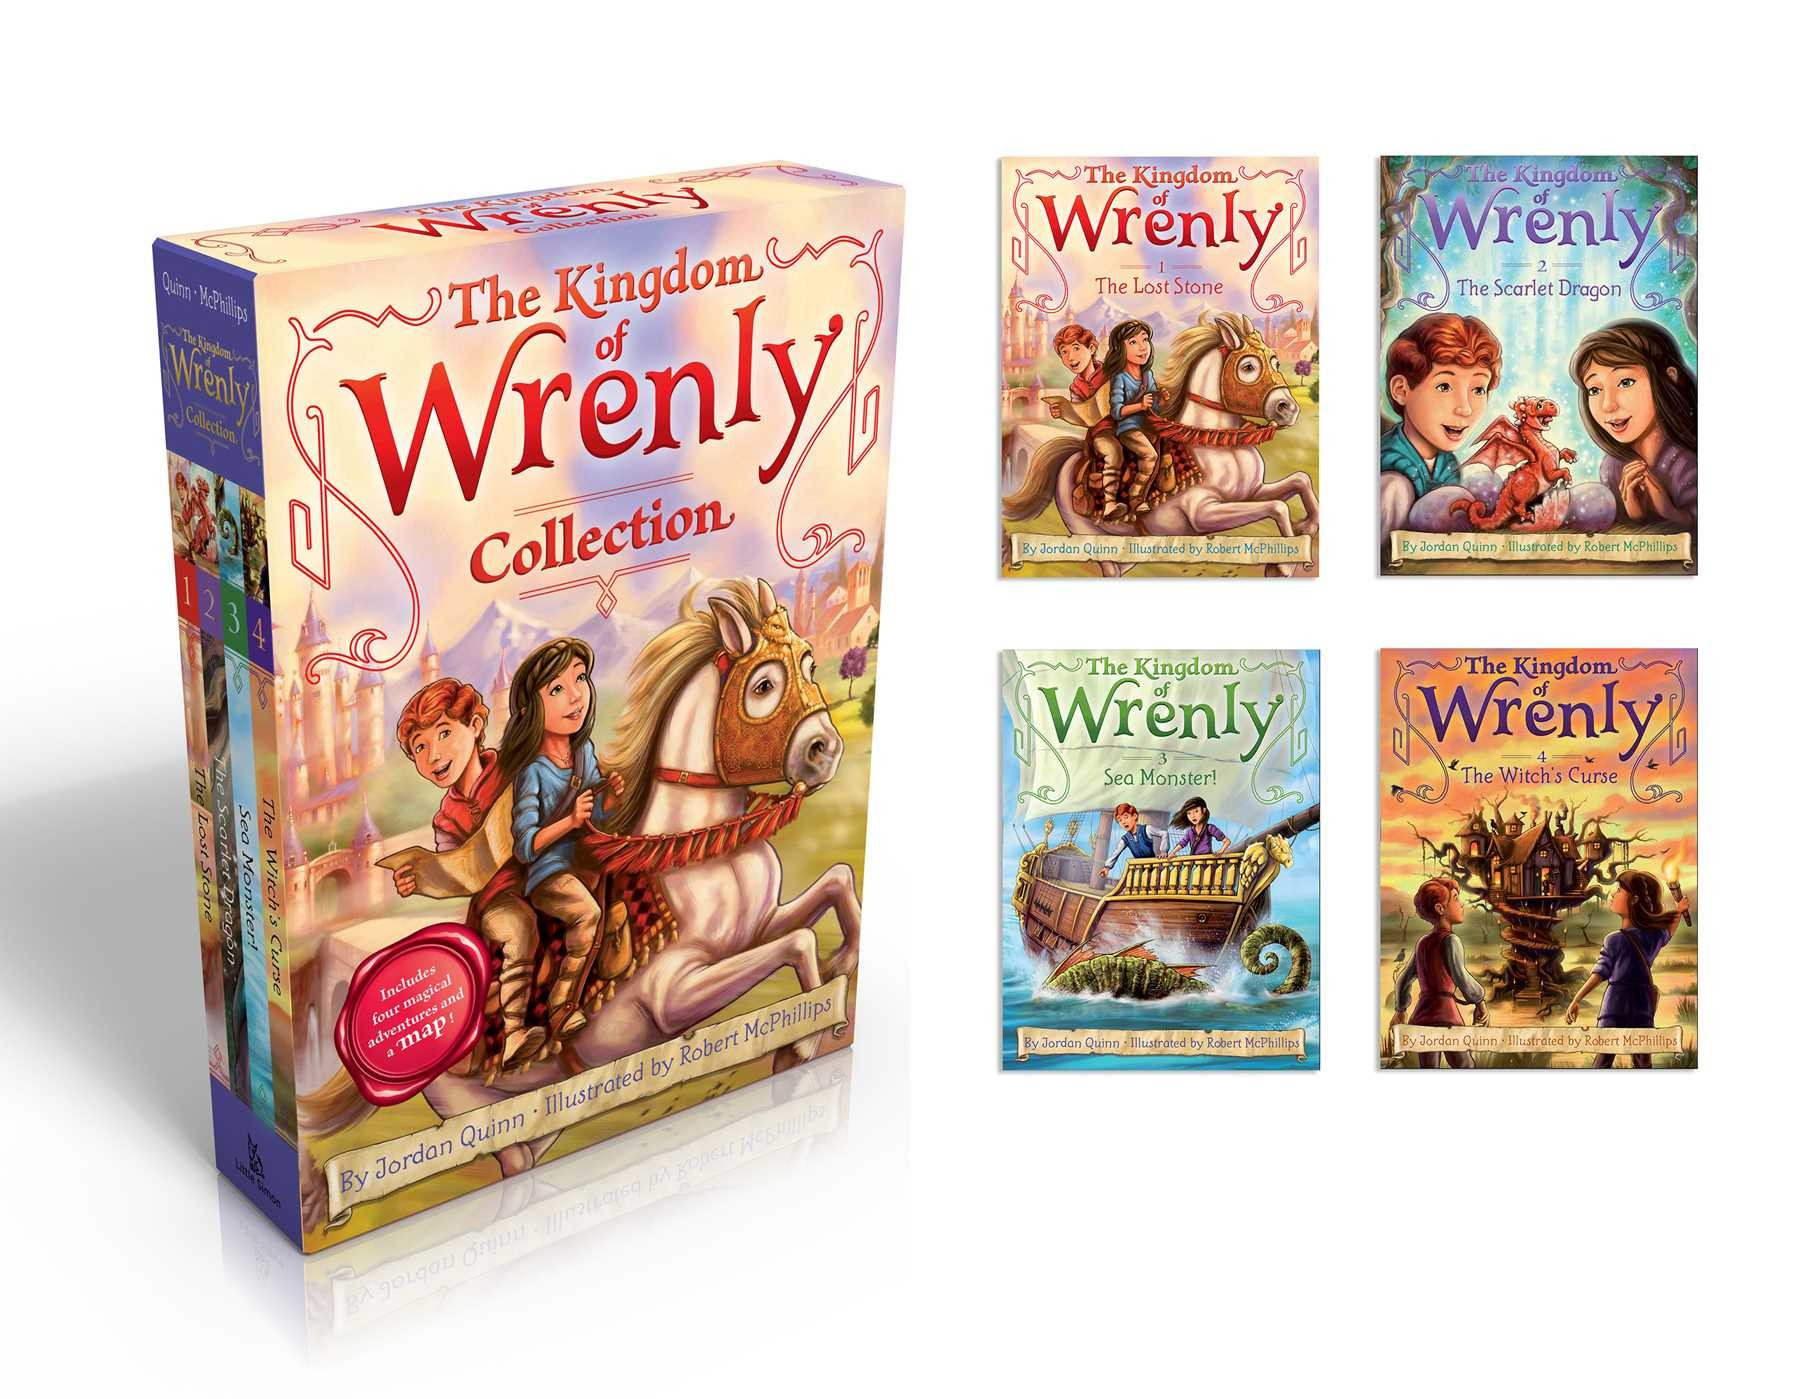 The kingdom of wrenly collection 9781481444866.in01